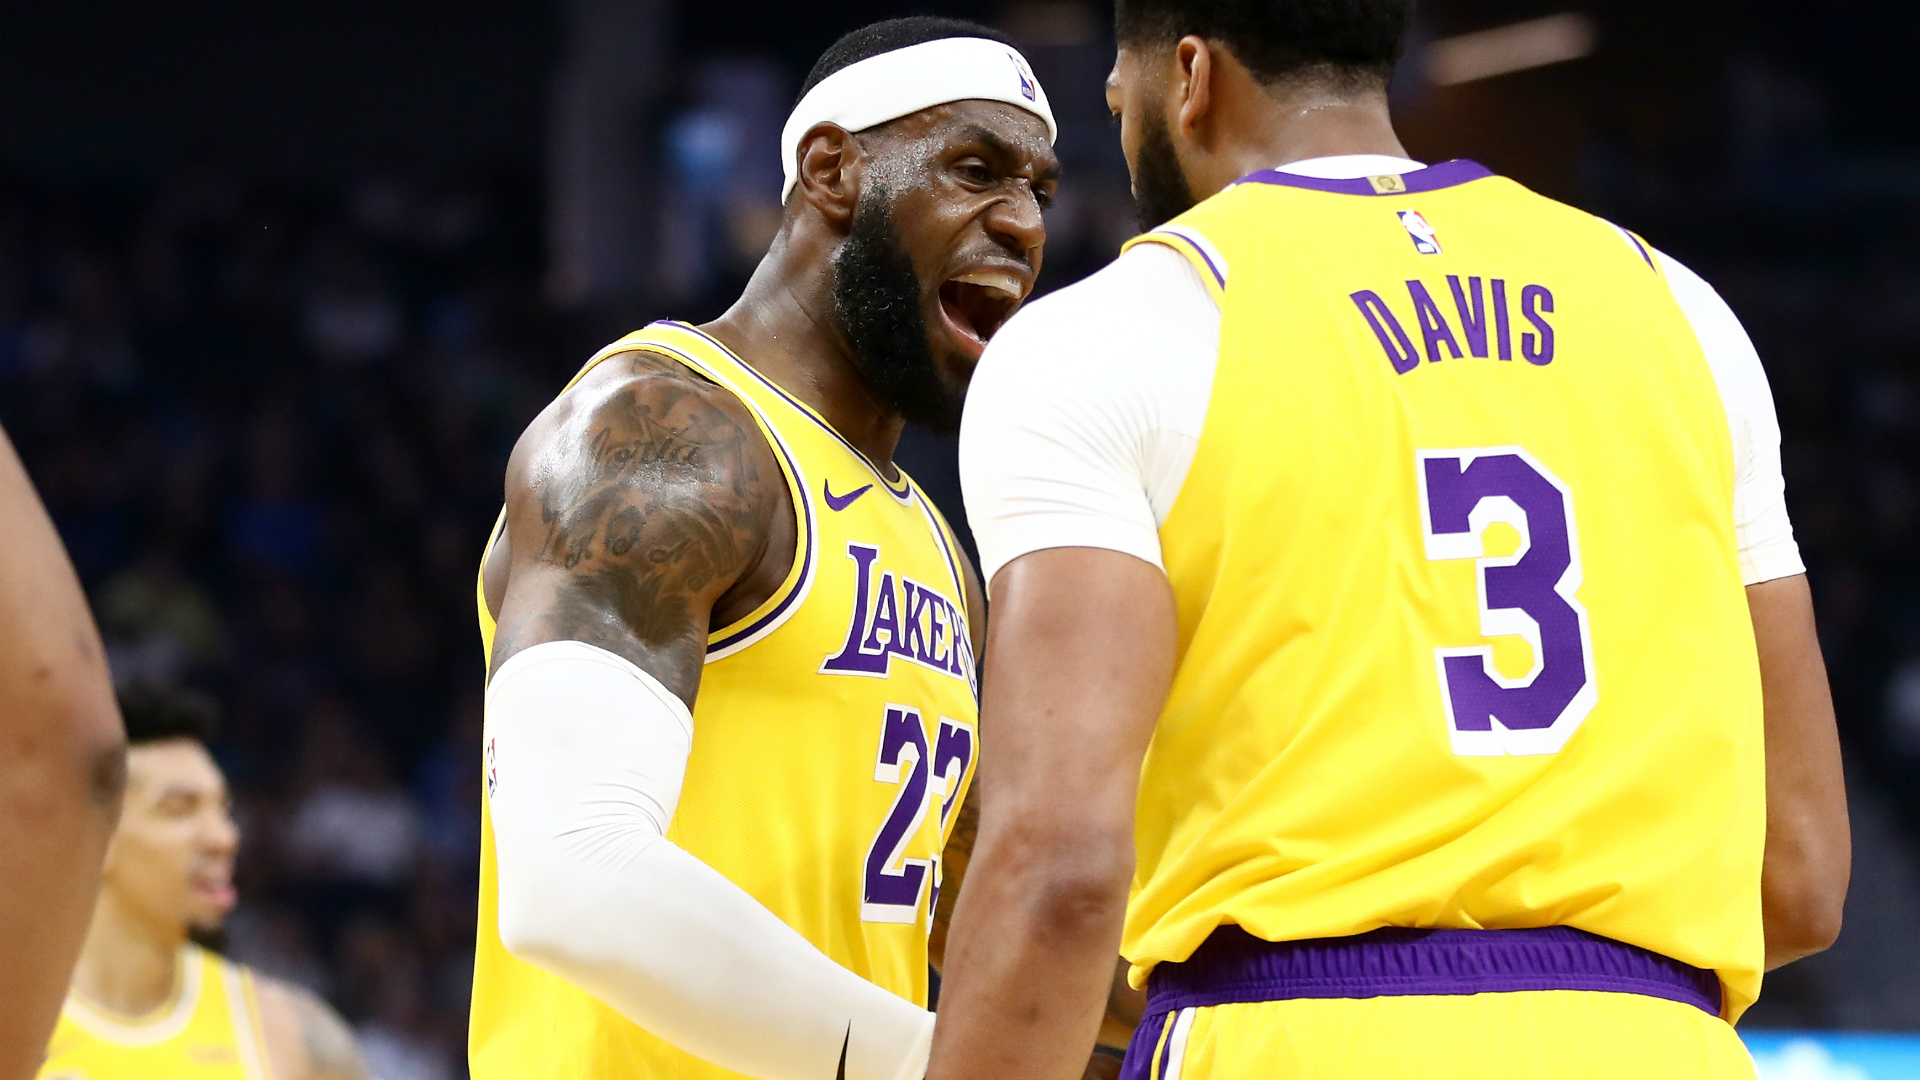 LeBron James excited for opening night: 'It's like the first day of school'